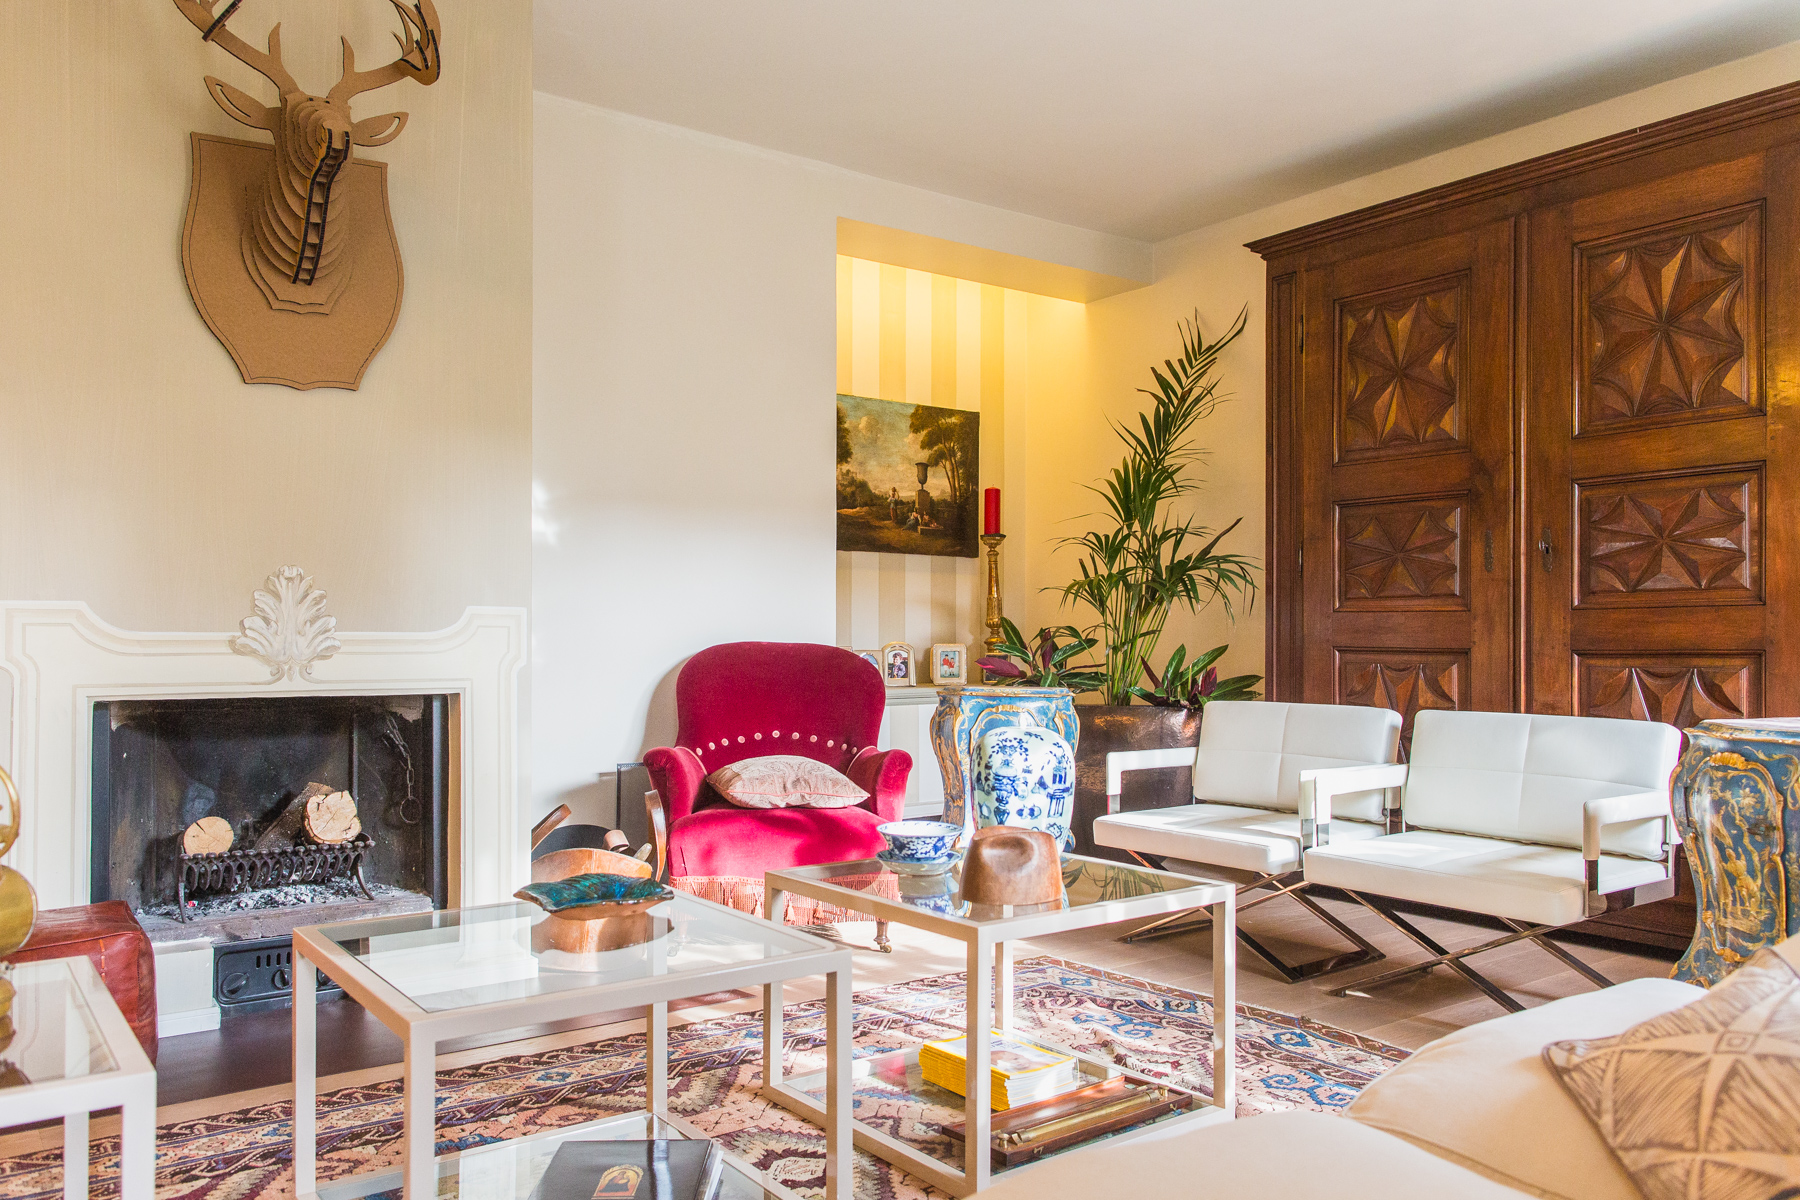 Additional photo for property listing at Refined apartment in the pre-hill of Turin Via Luisa del Carretto Turin, Turin 10131 Italy